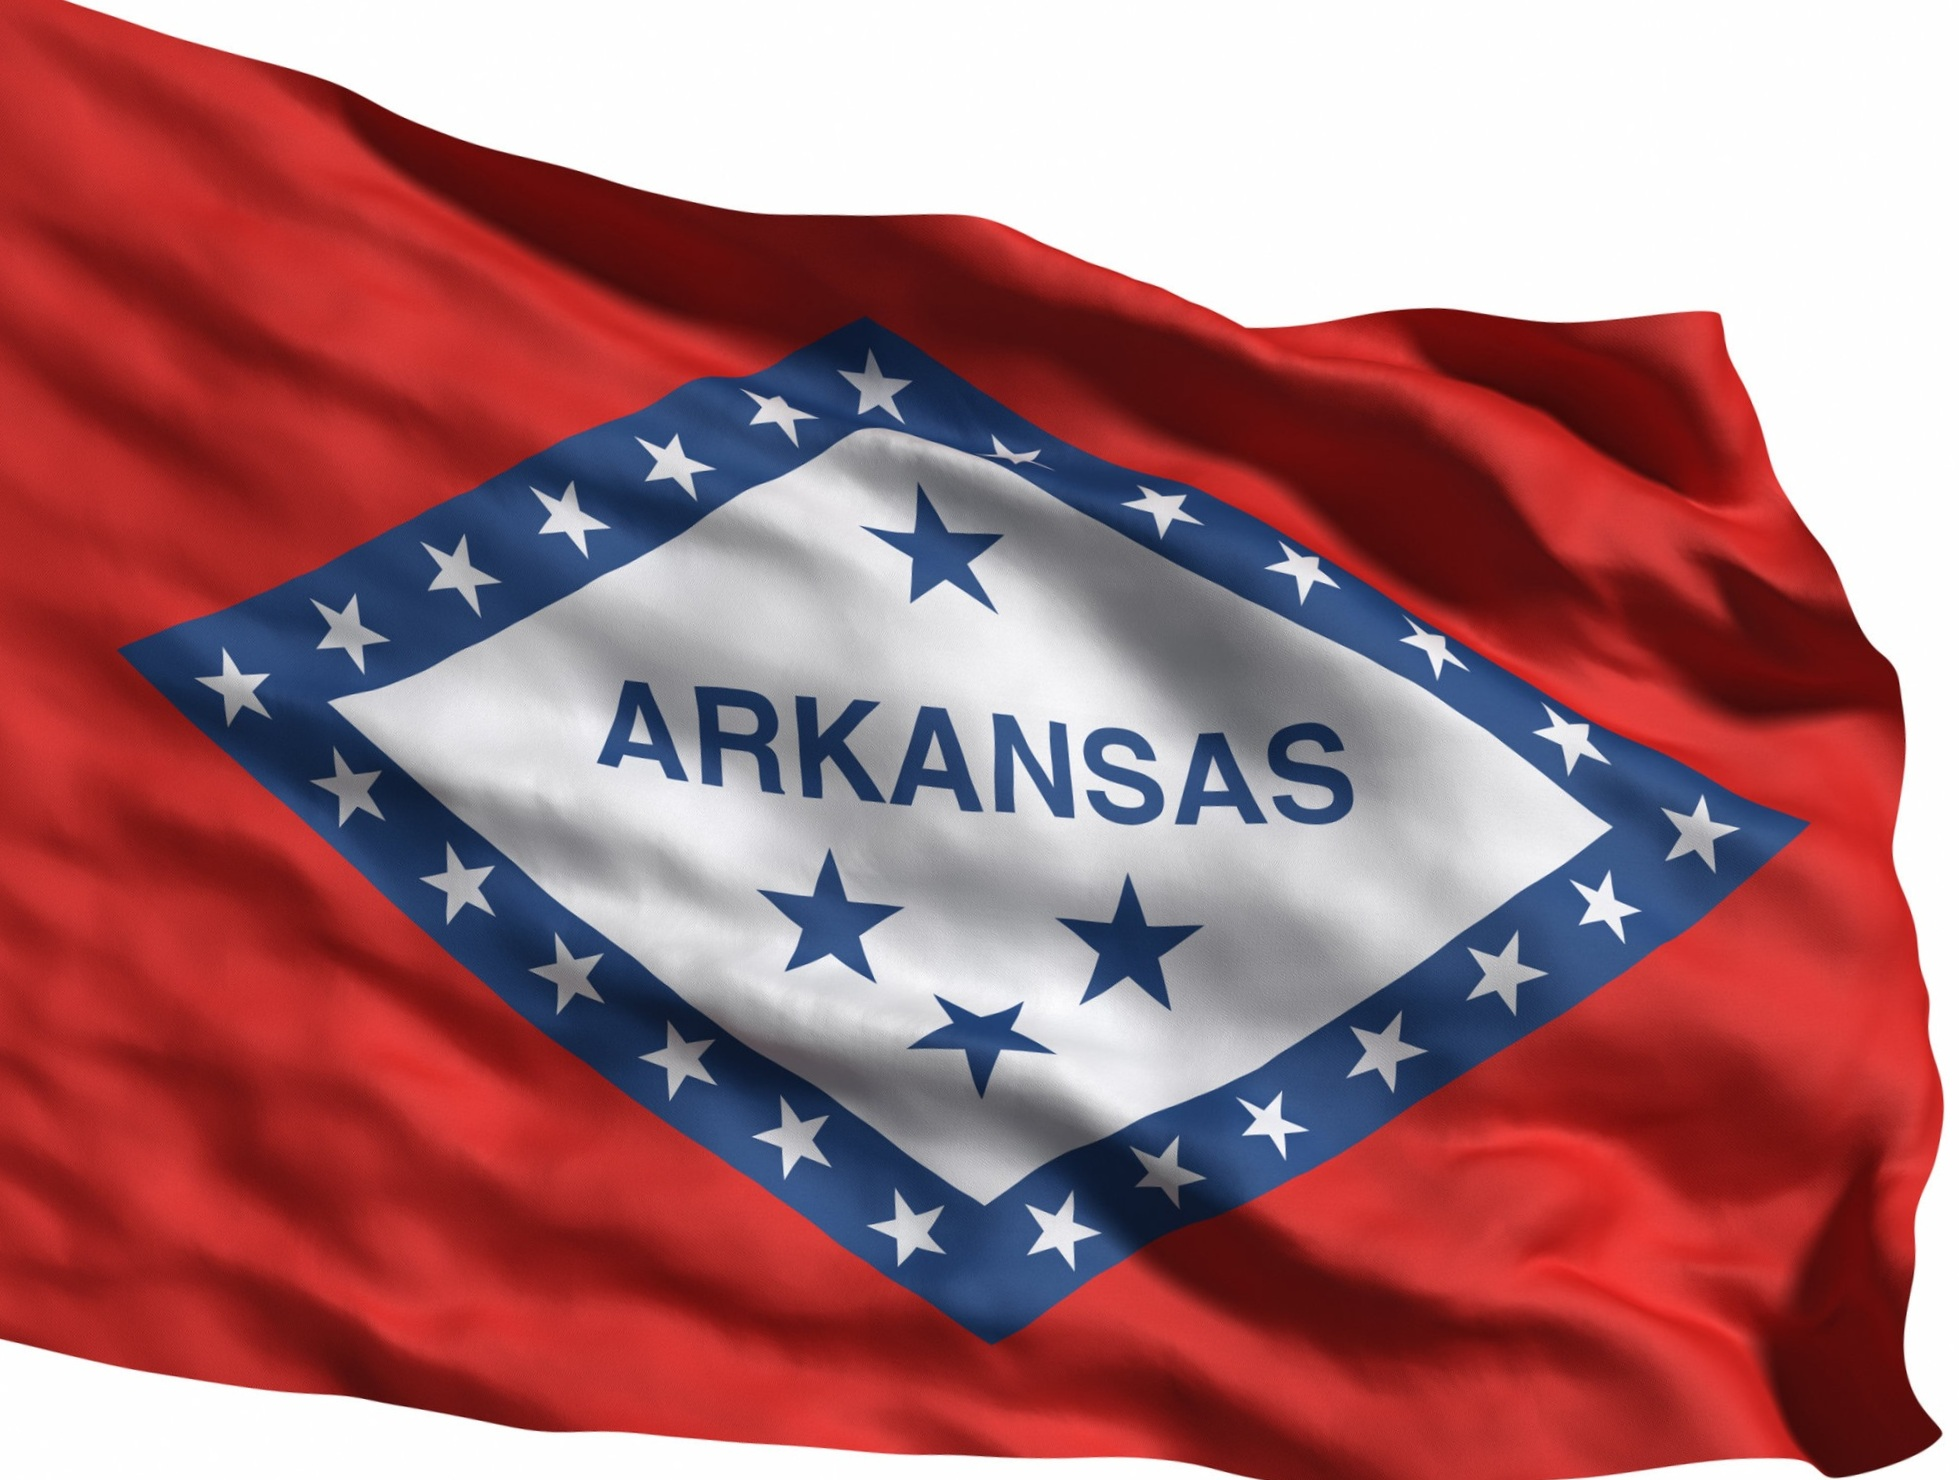 Arkansas%2BState%2BFlag.jpg